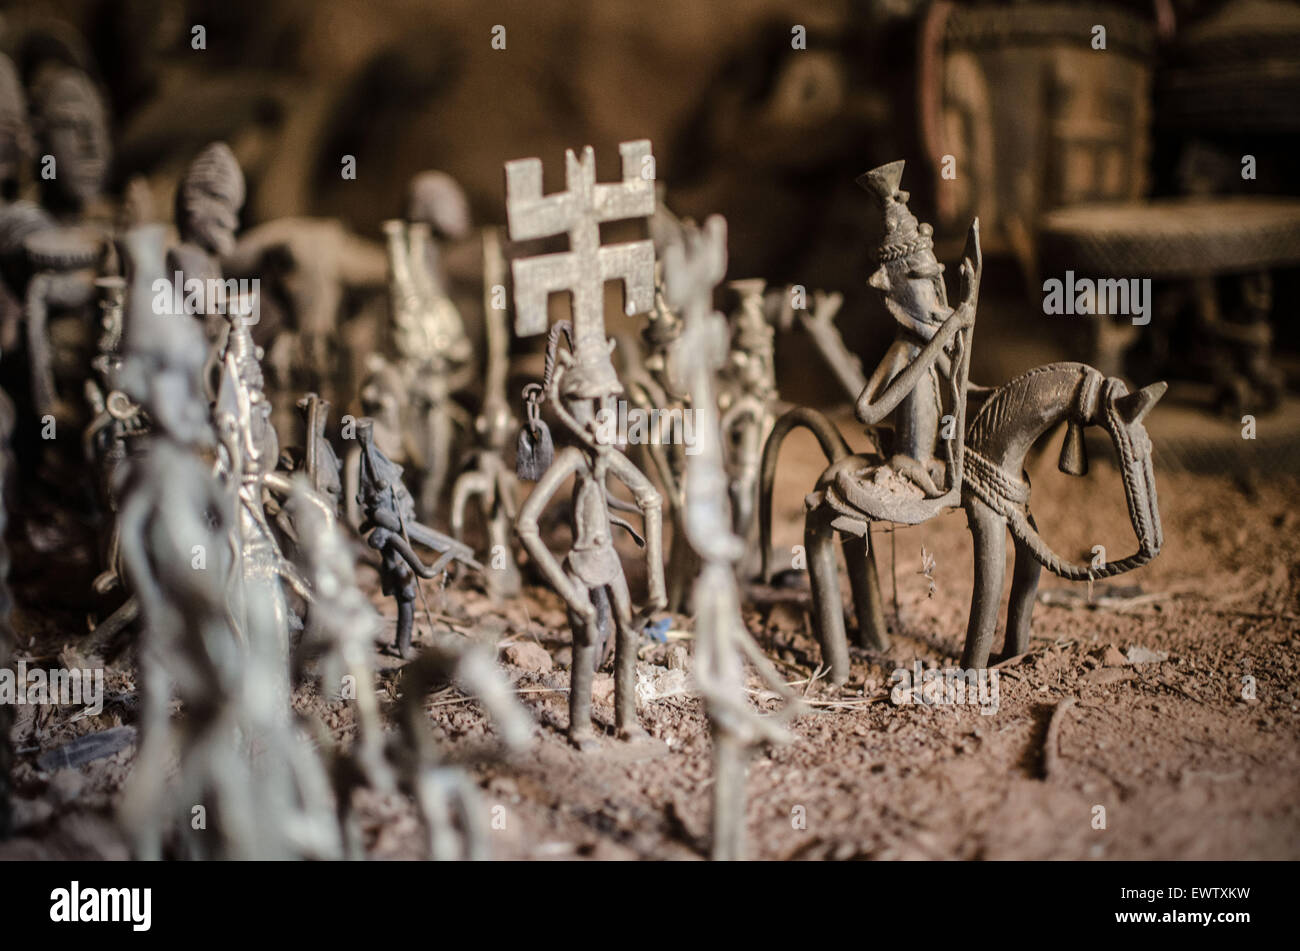 Bronze figurines in Dogon country, Mali. - Stock Image